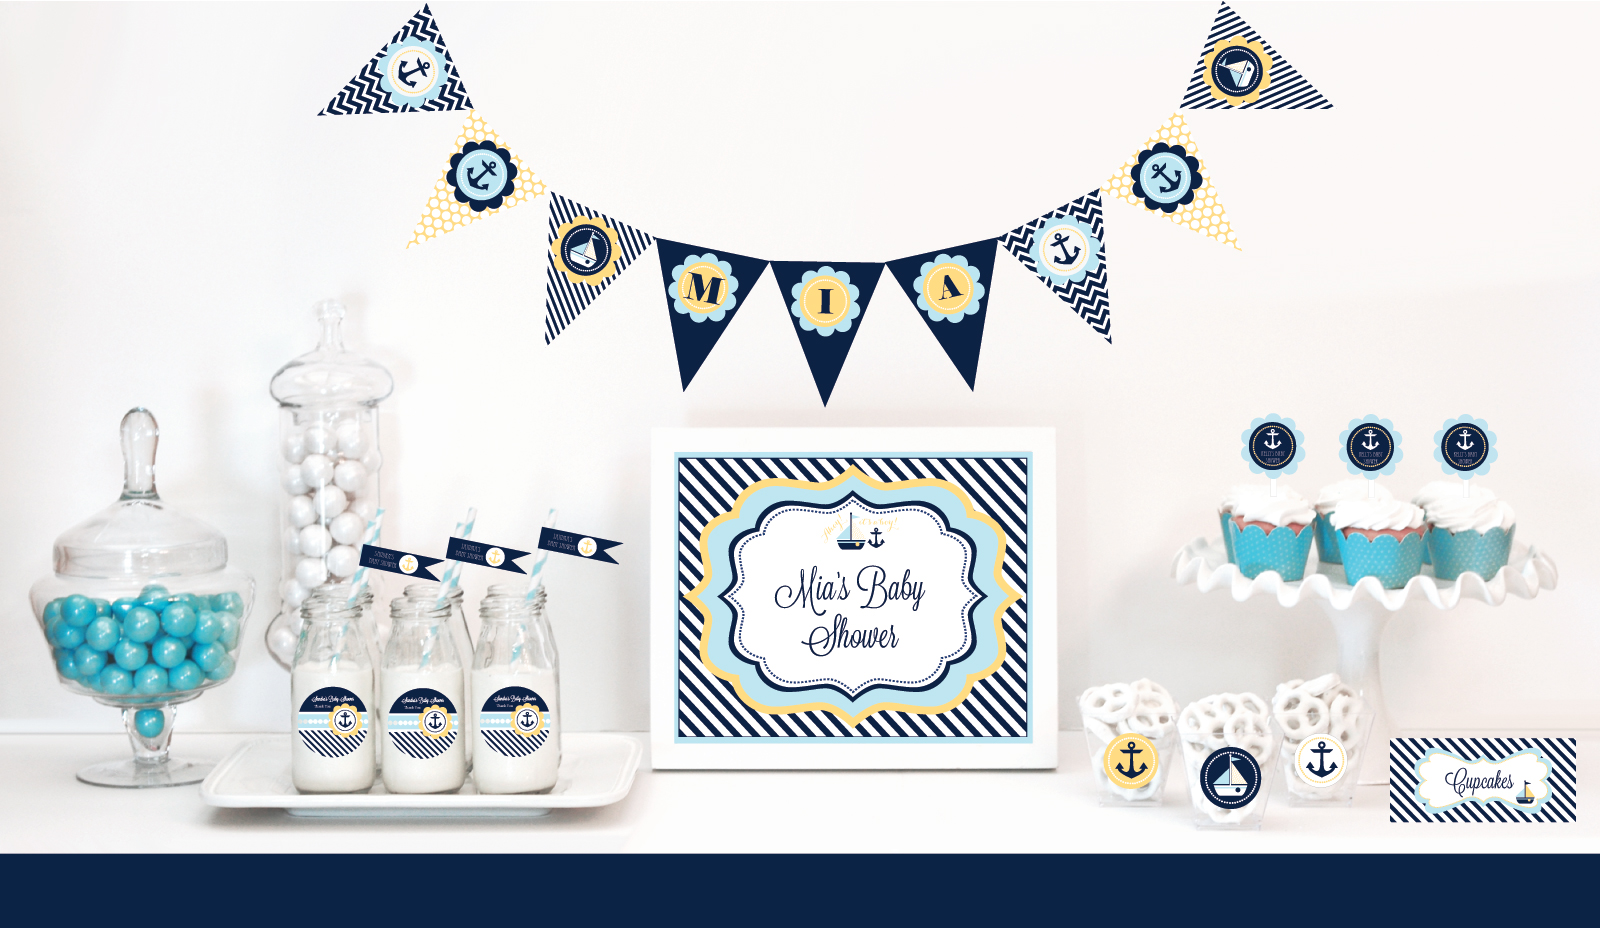 Wholesale Wedding Favors, Party Favors, by Event Blossom: Nautical Baby Shower Favors